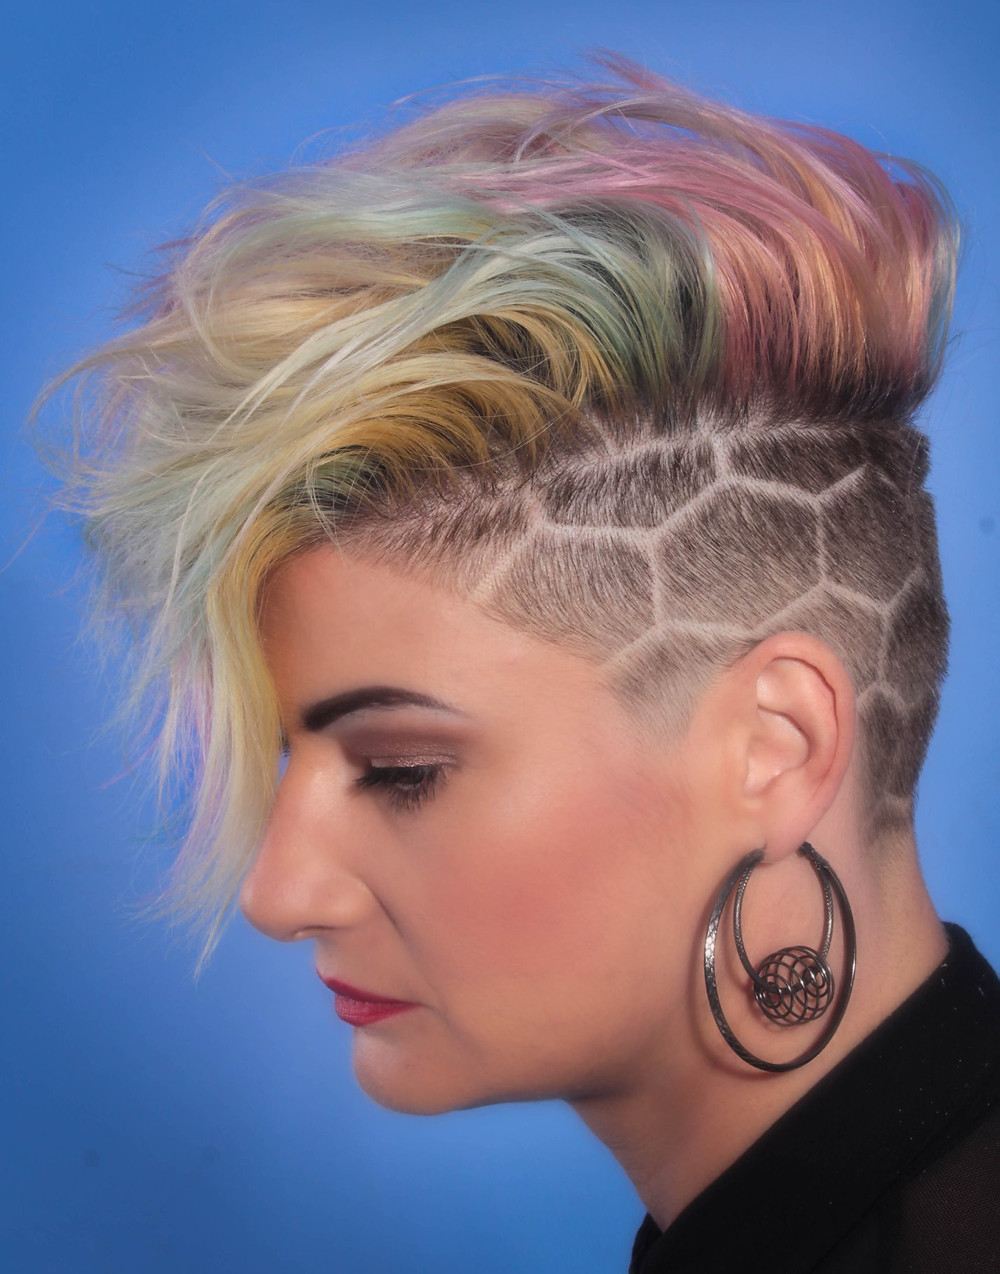 hair model with undercut patterns